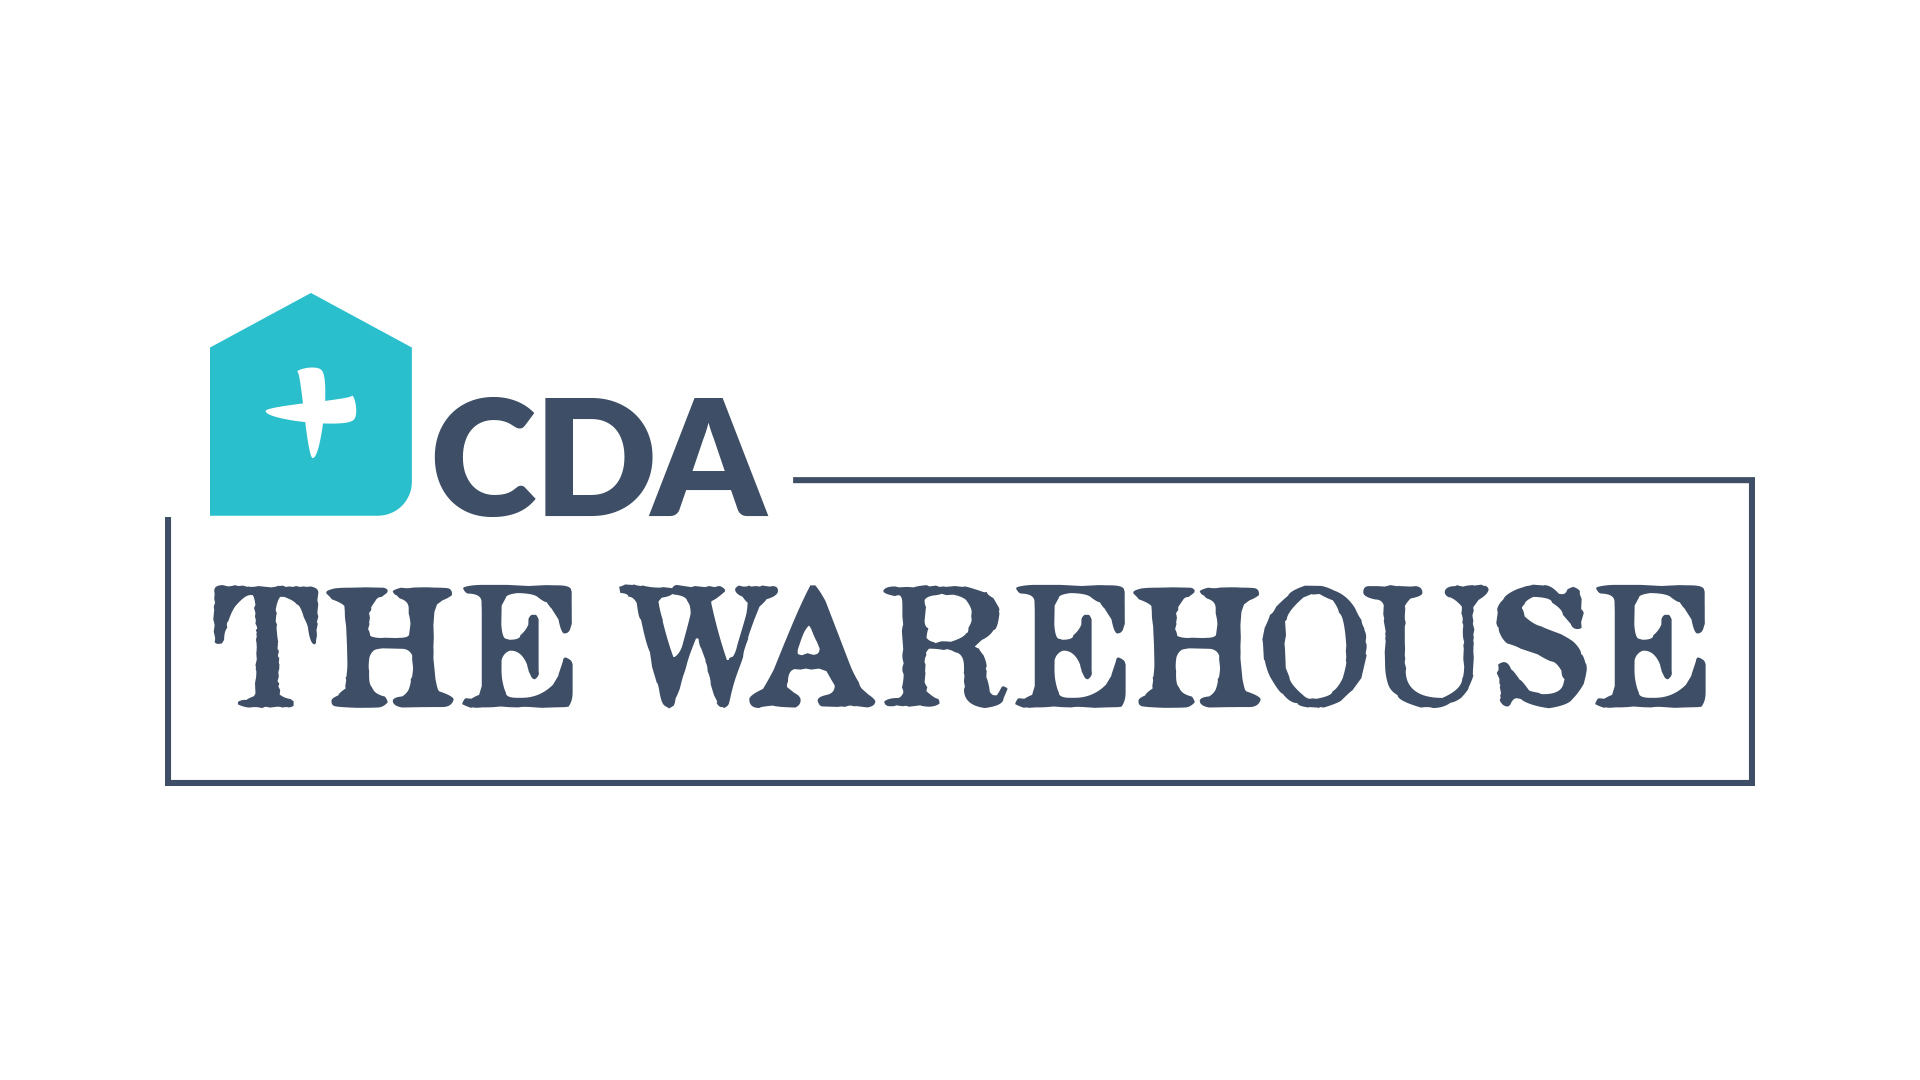 CDA Warehouse logo 1080p.jpg